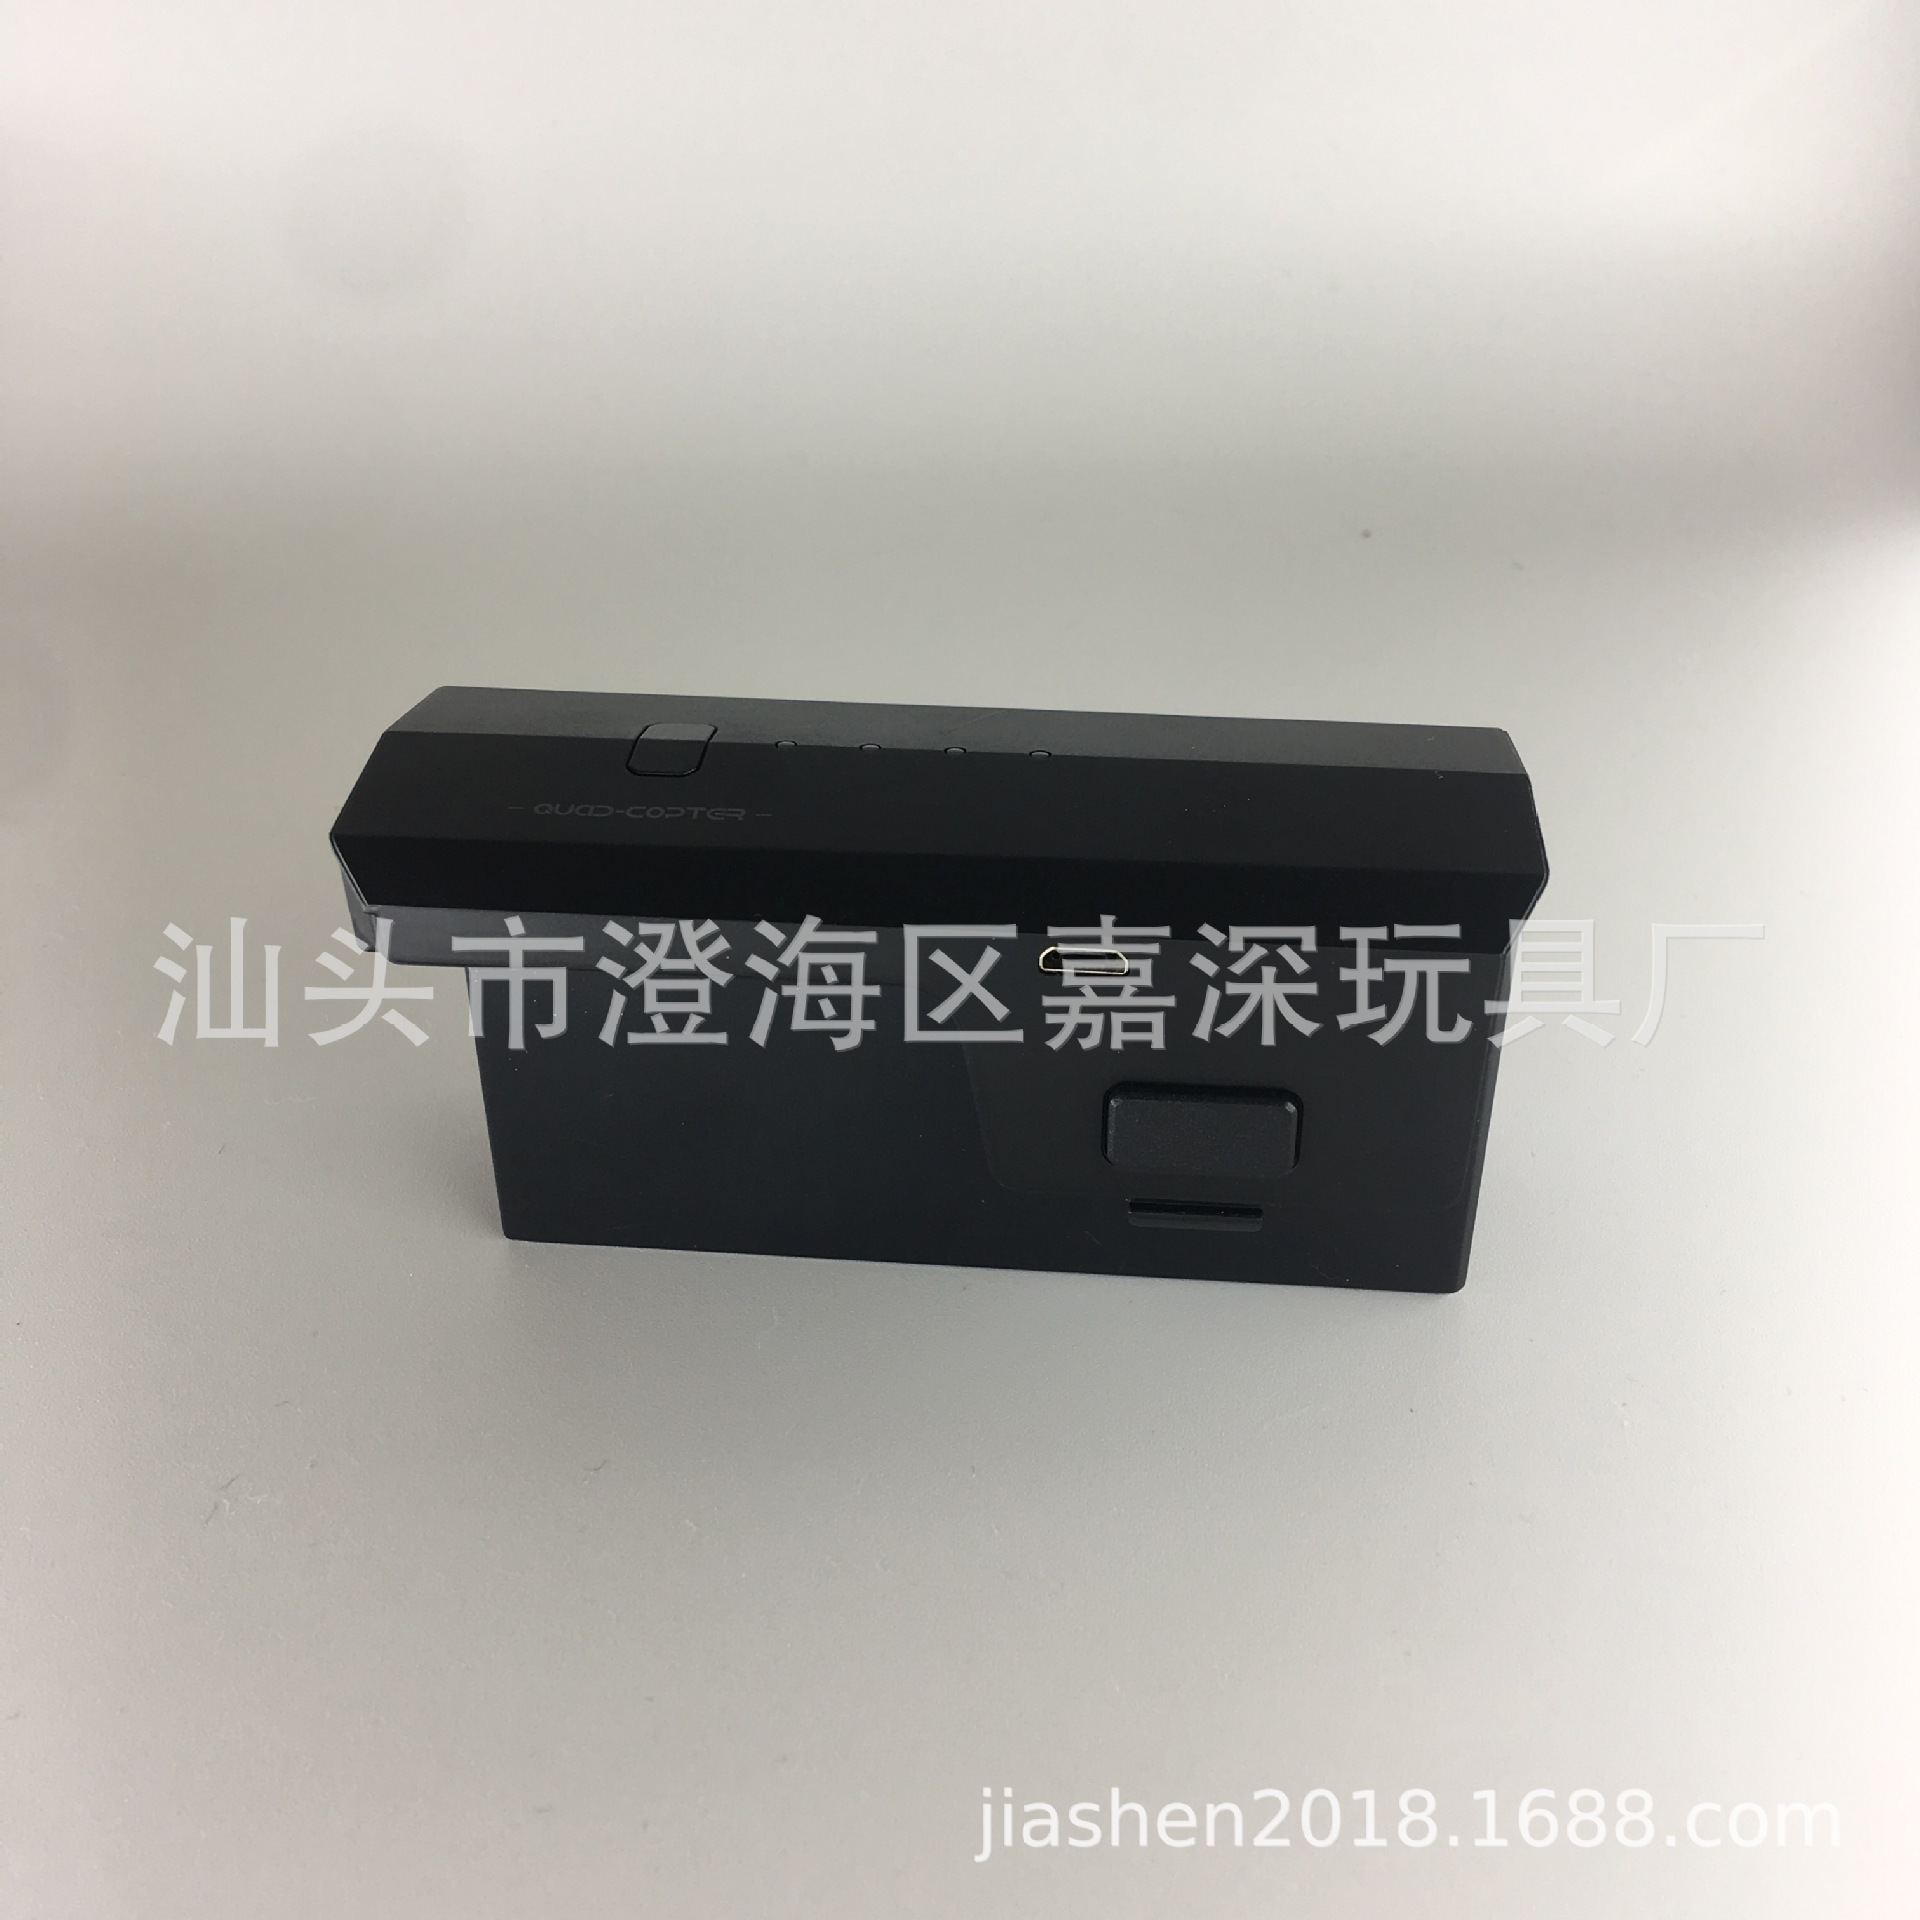 Sjrc Shi Ji F11 Aerial Photography Folding Unmanned Aerial Vehicle Original Factory Battery 11.1V 2500 Miliamps Module Chargable